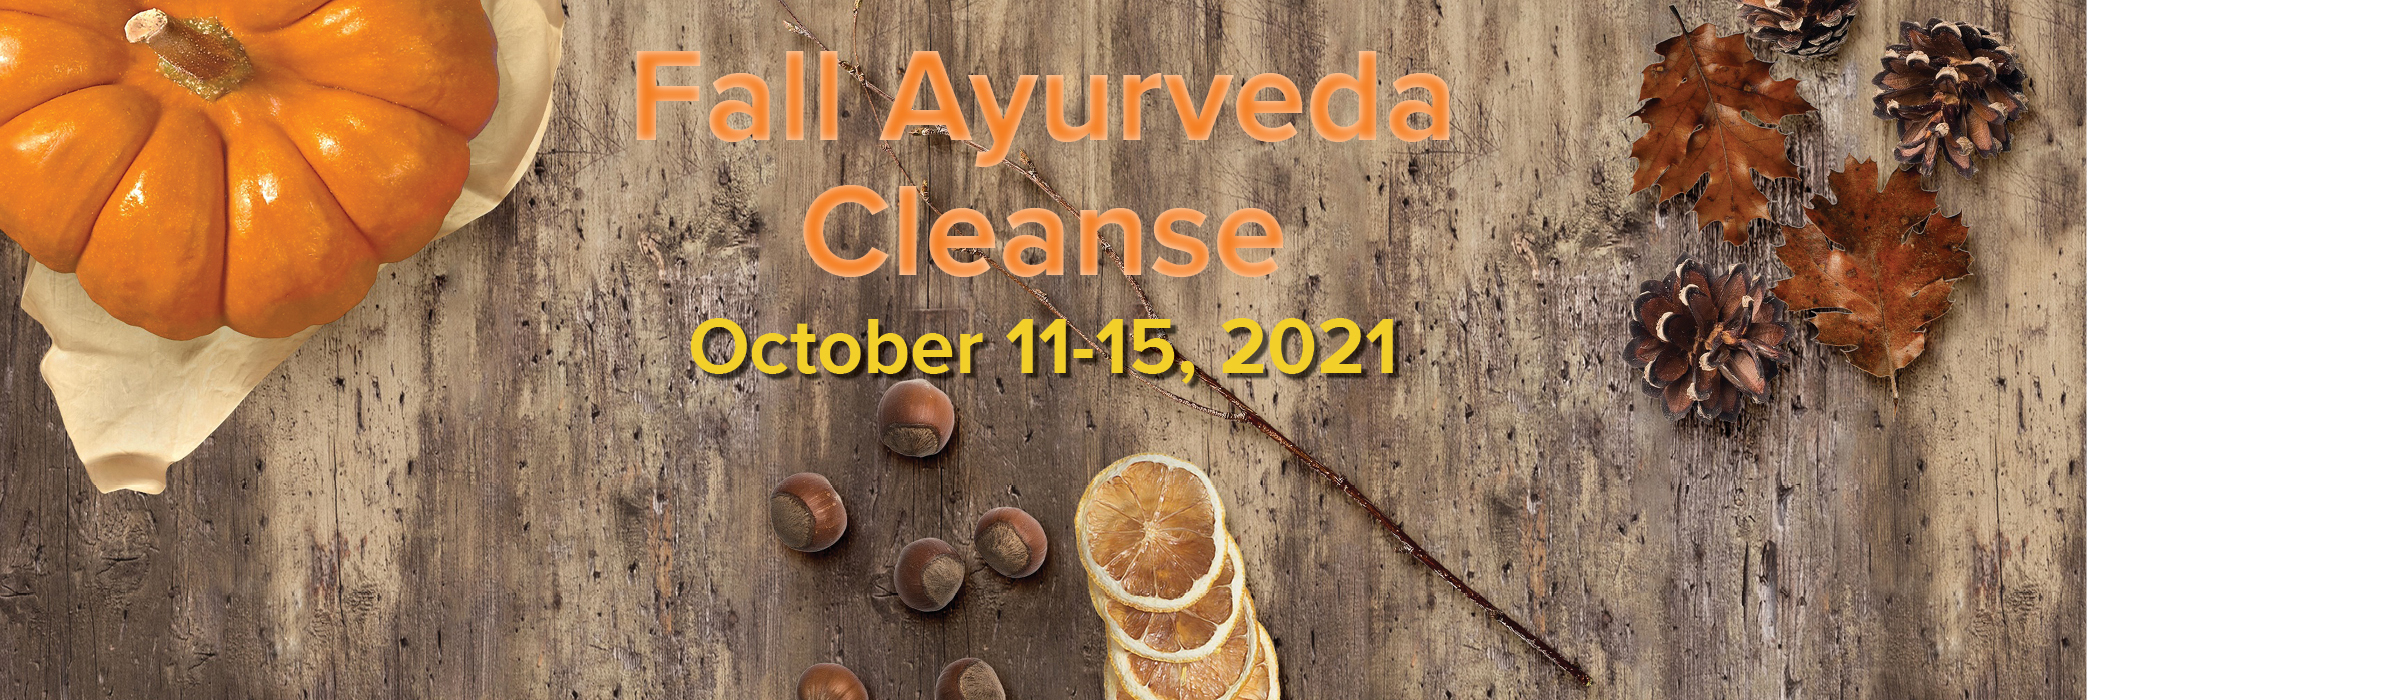 Event Image Fall Ayurveda Cleanse with Sage & Fettle Ayurveda and Angelina Fox, ERYT500, YACEP, Ayurveda Health Counselor and Yoga Teacher